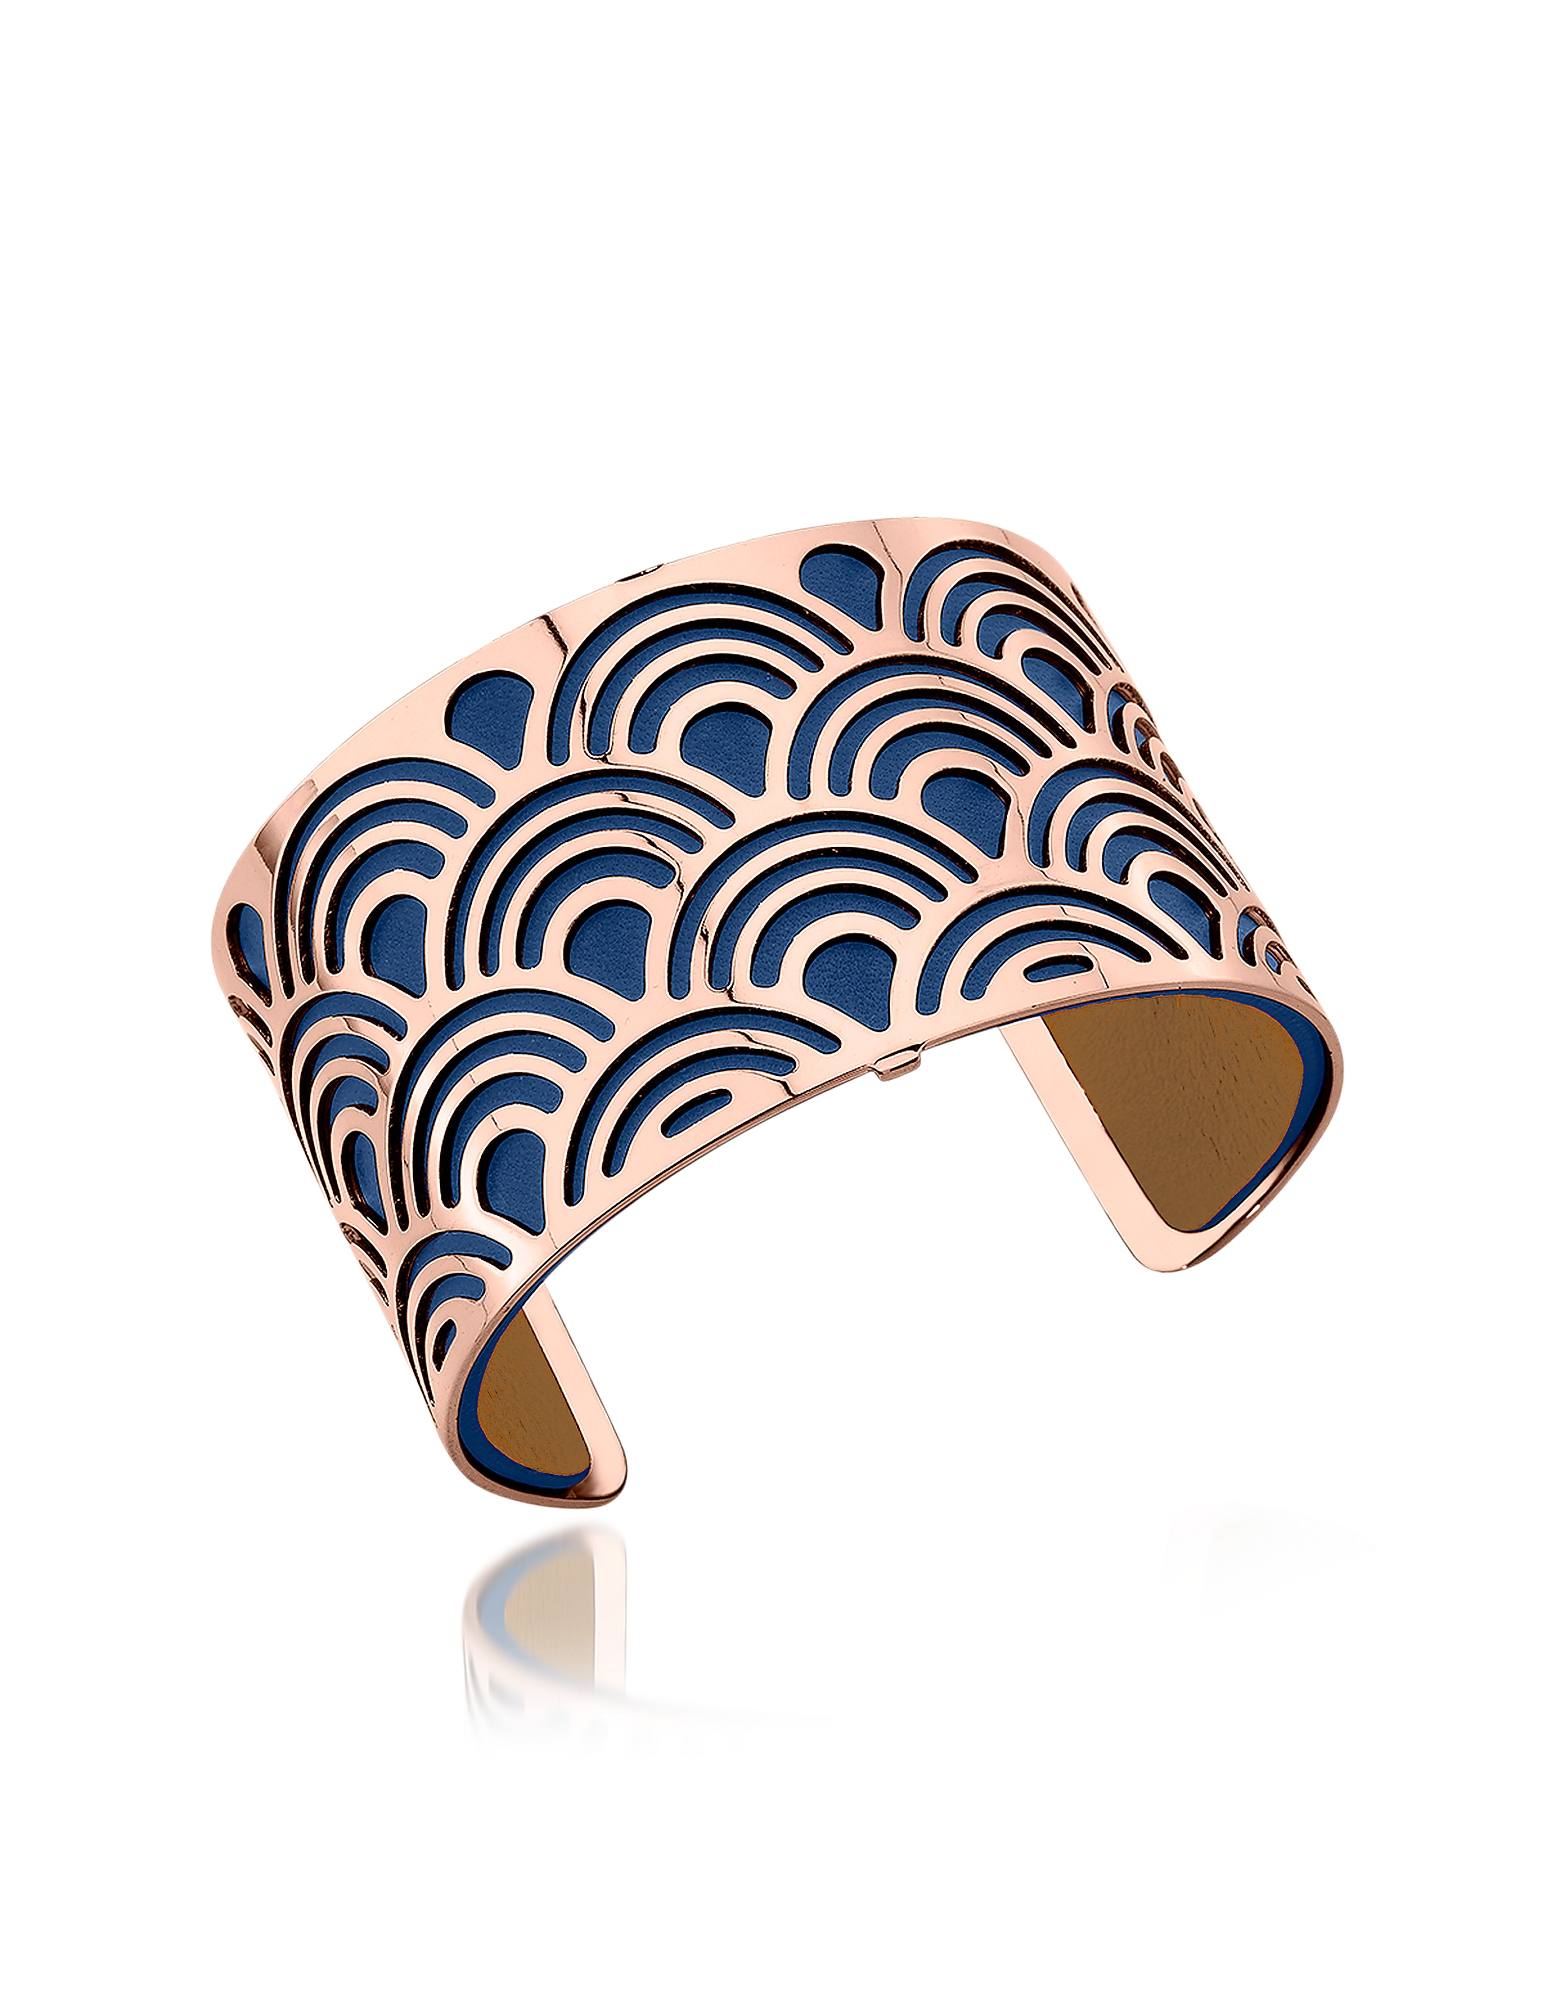 Les Georgettes Bracelets, Poisson Rose Gold Plated Bracelet w/Navy Blue and Beige Reversible Leather